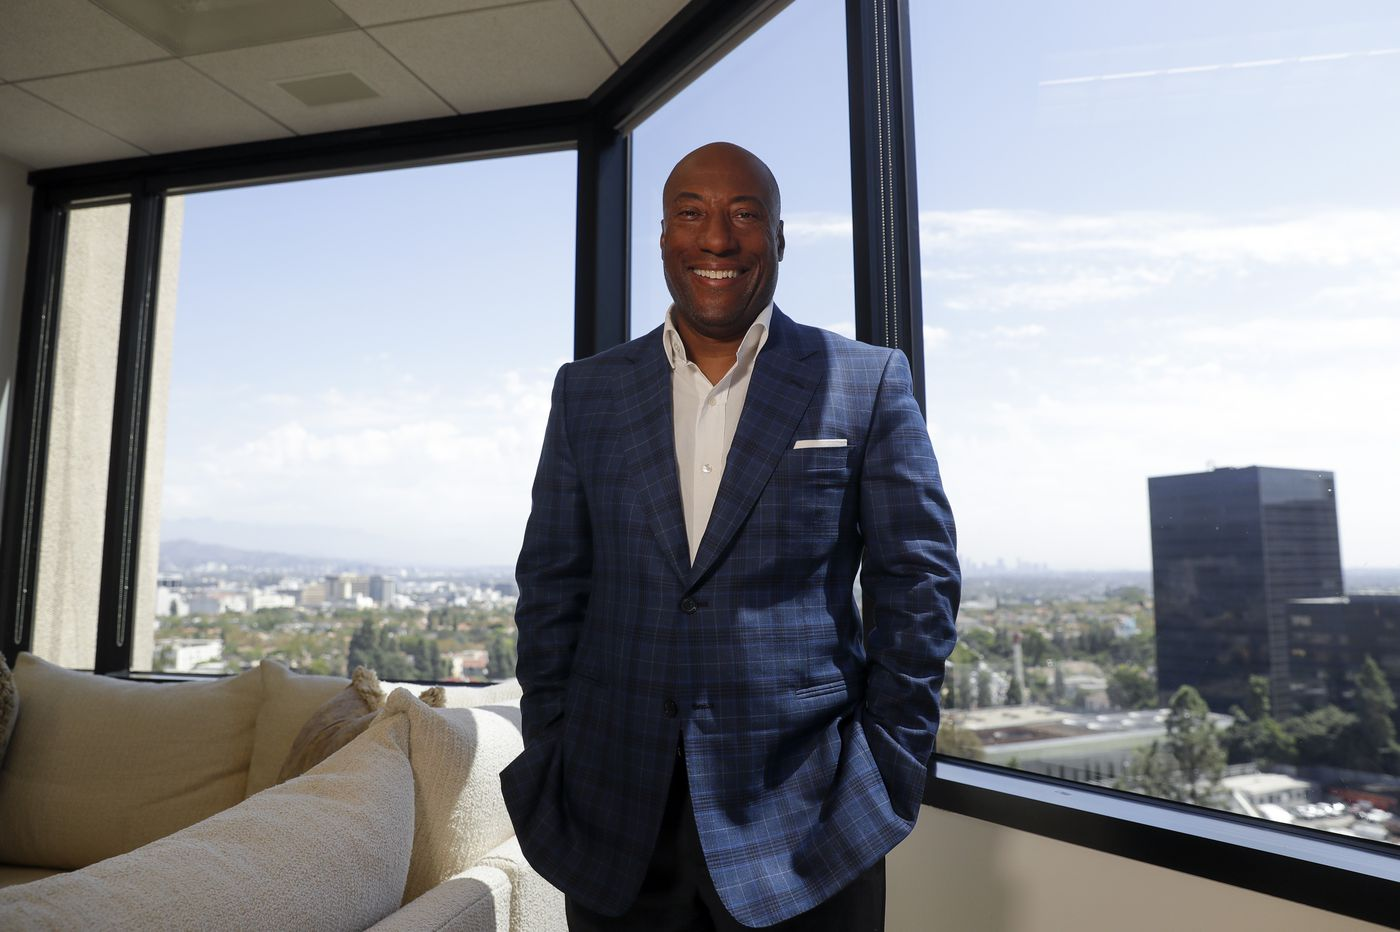 The Supreme Court sides with Comcast in Byron Allen's racial discrimination case